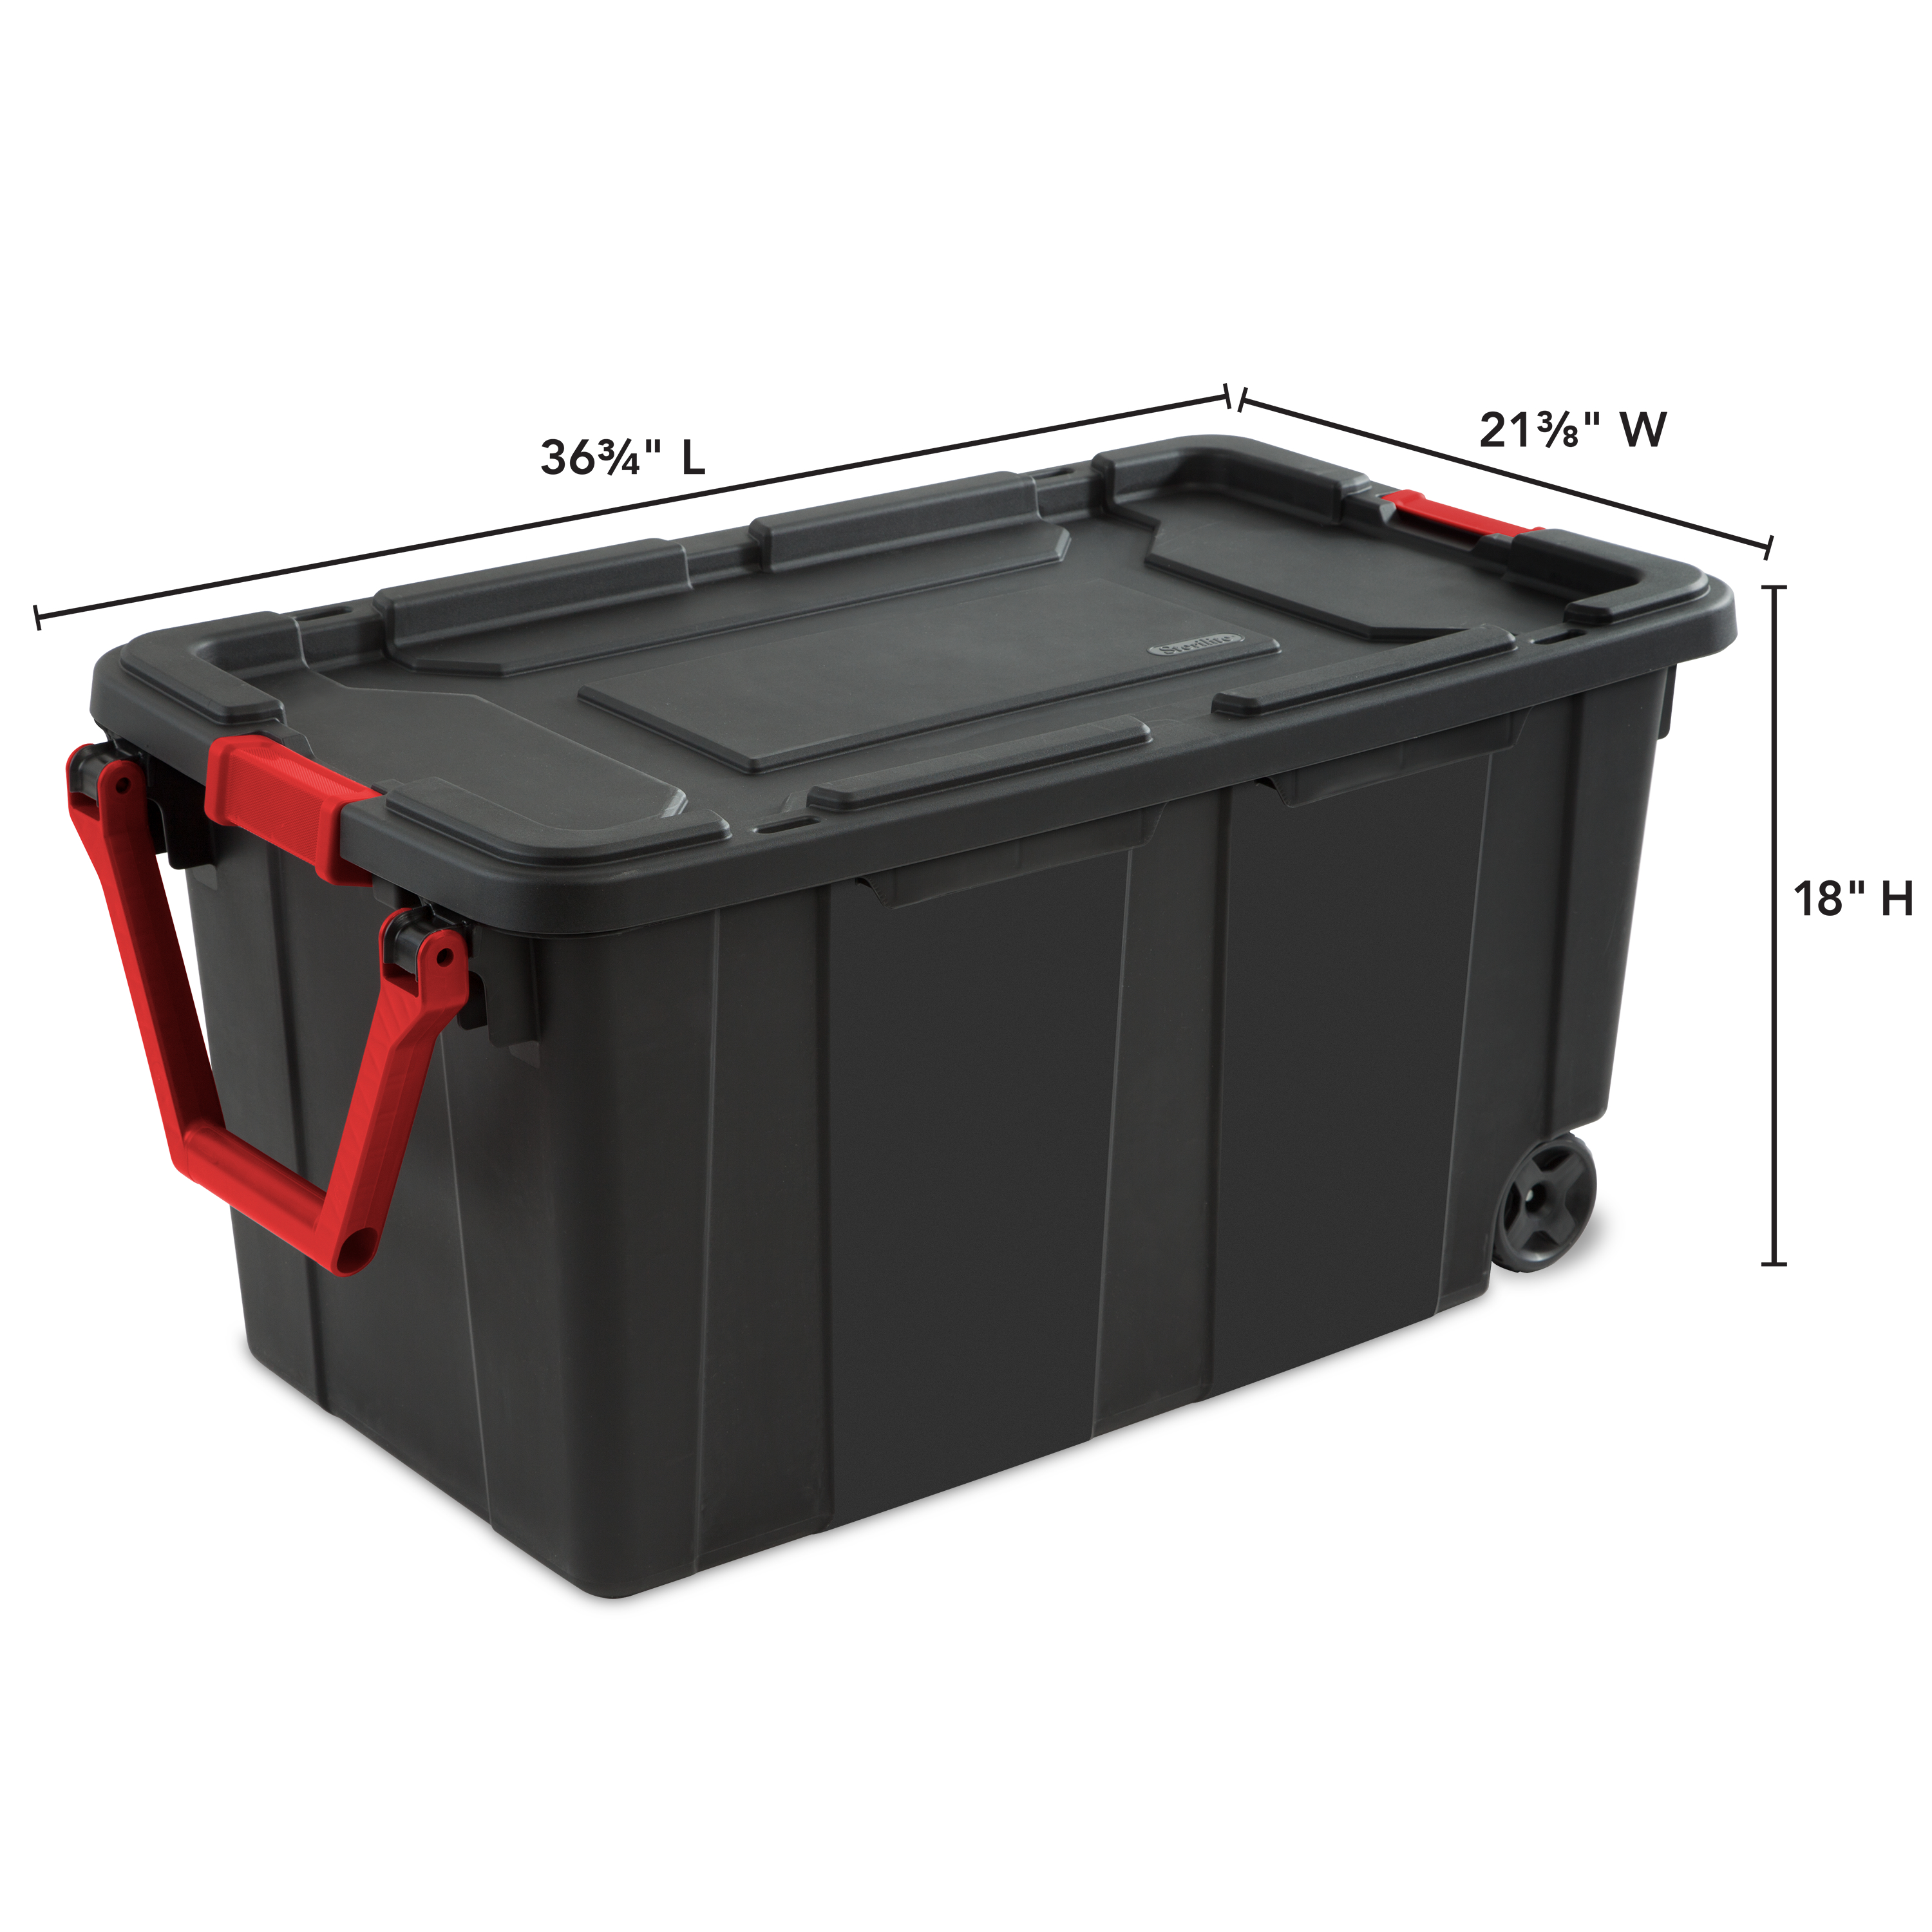 Sterilite 40 Gal 151 L Wheeled Industrial Tote Black Available